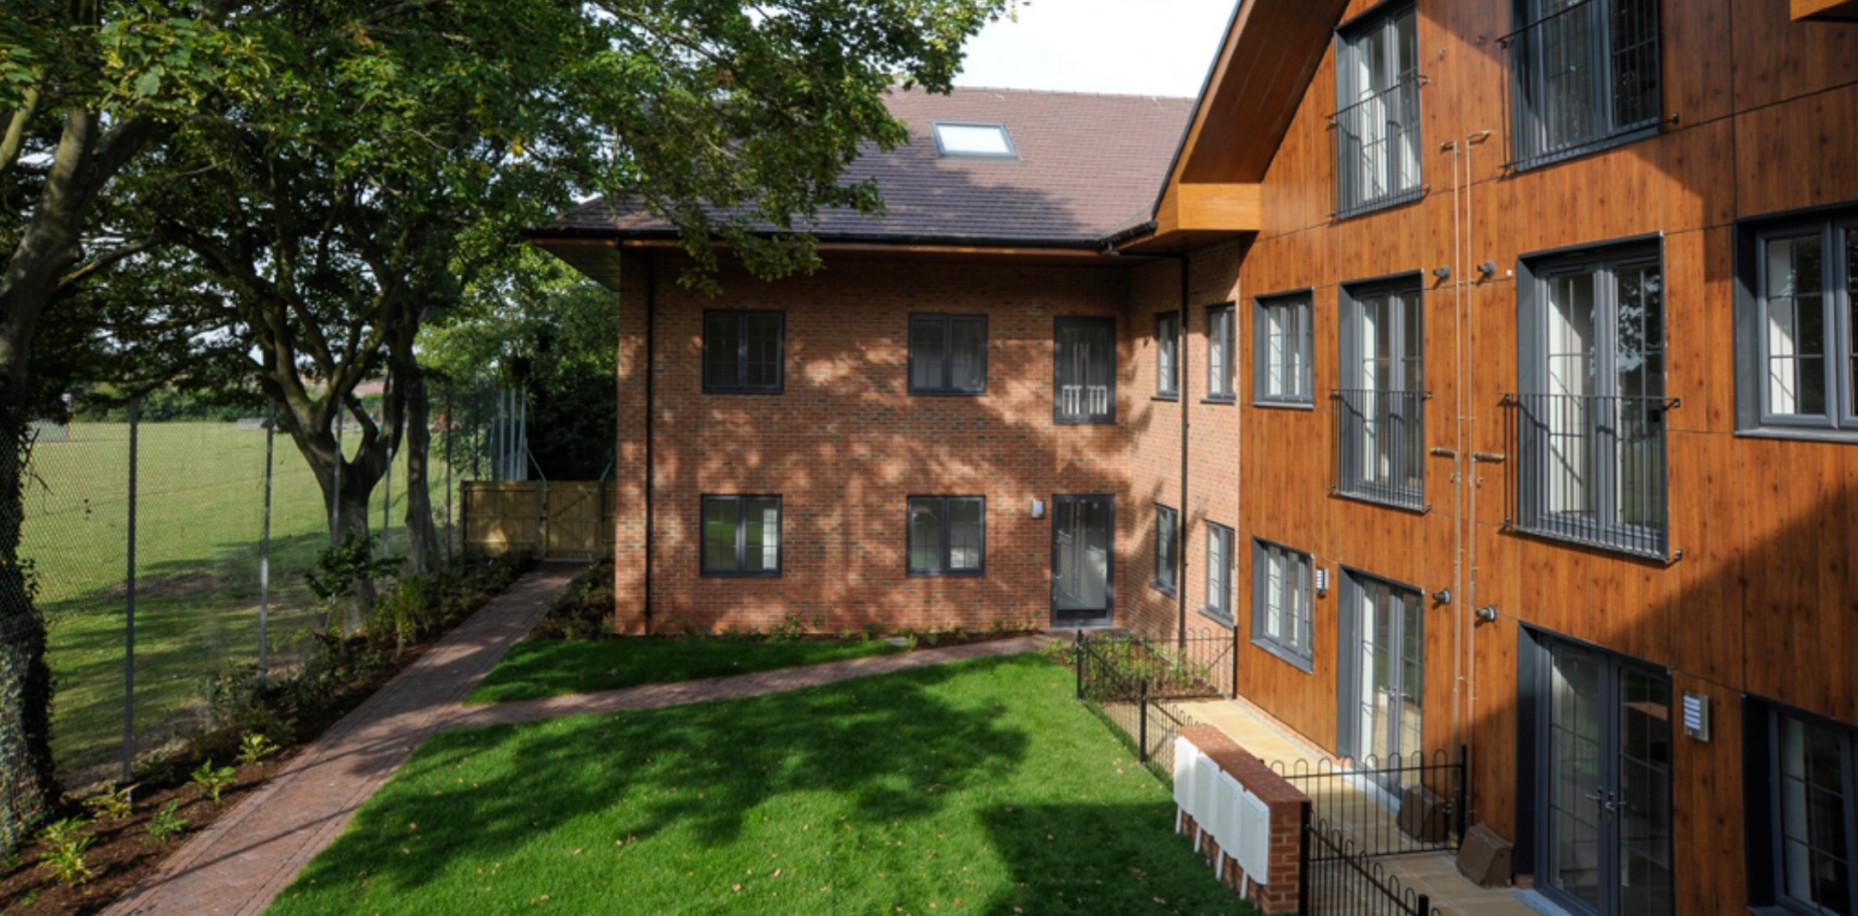 Birchington-On-Sea Receives Affordable Housing Boost